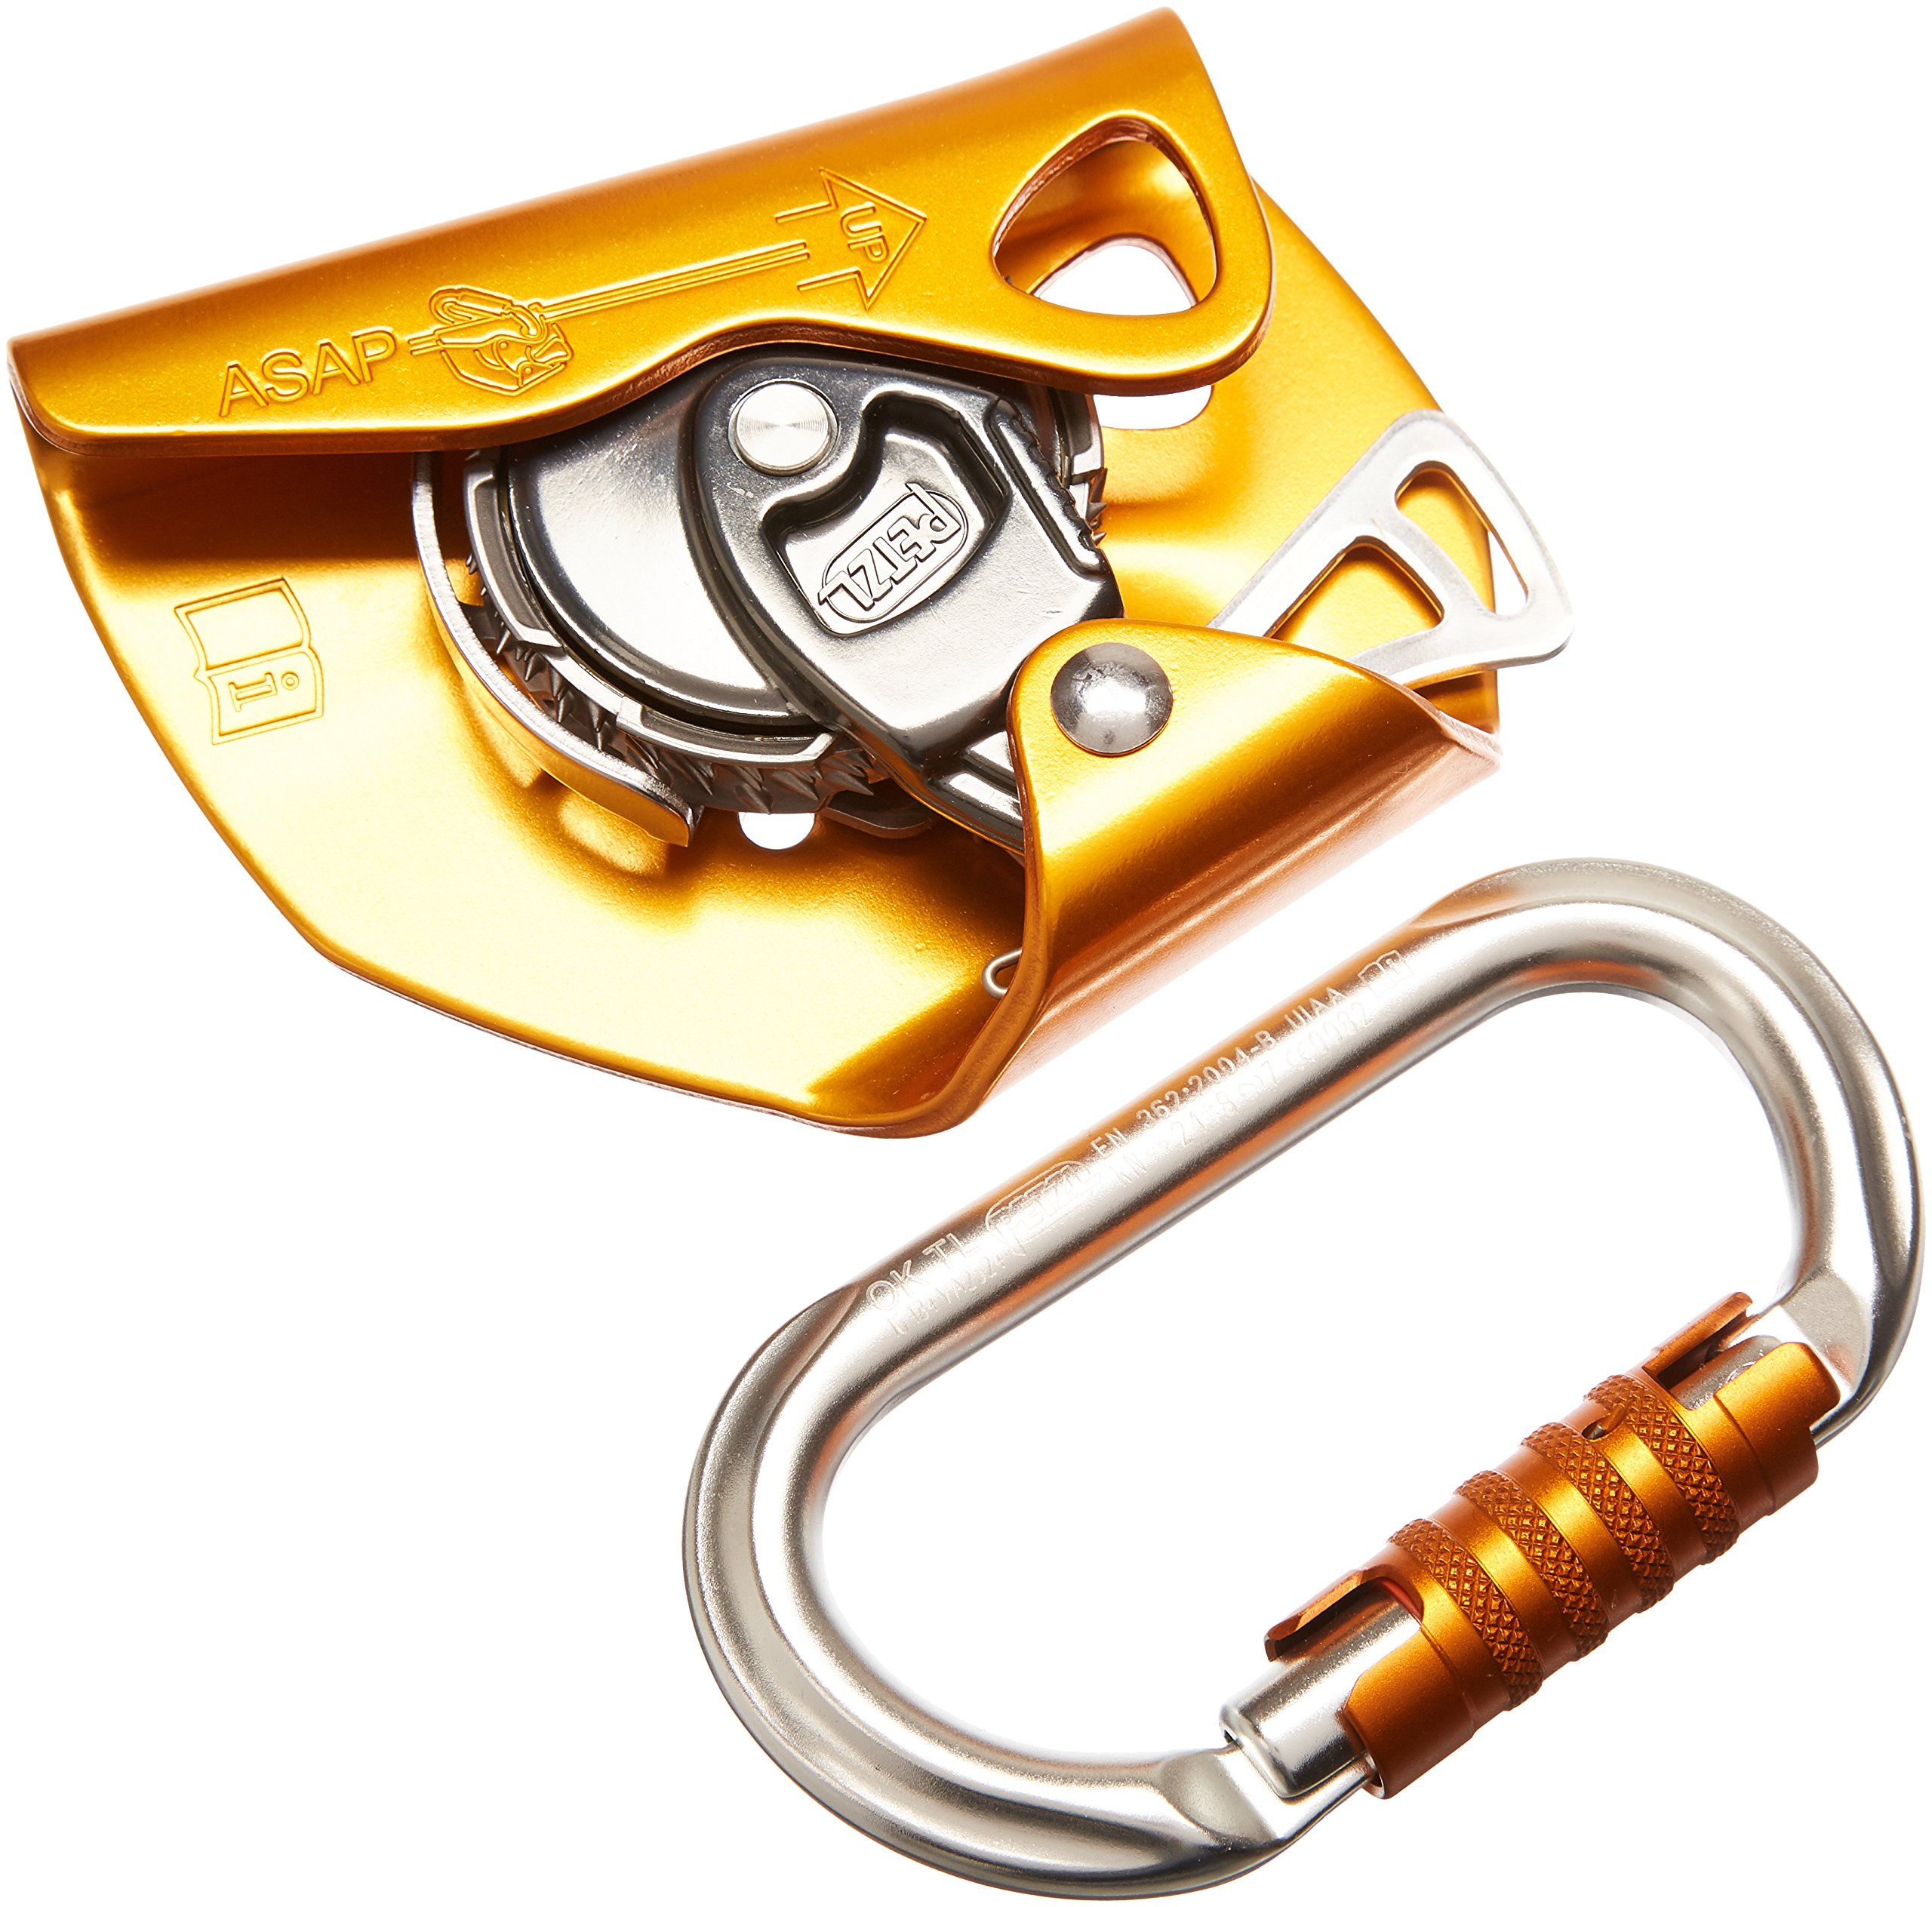 Petzl - ASAP, Mobile Fall Arresters by Petzl (Image #2)